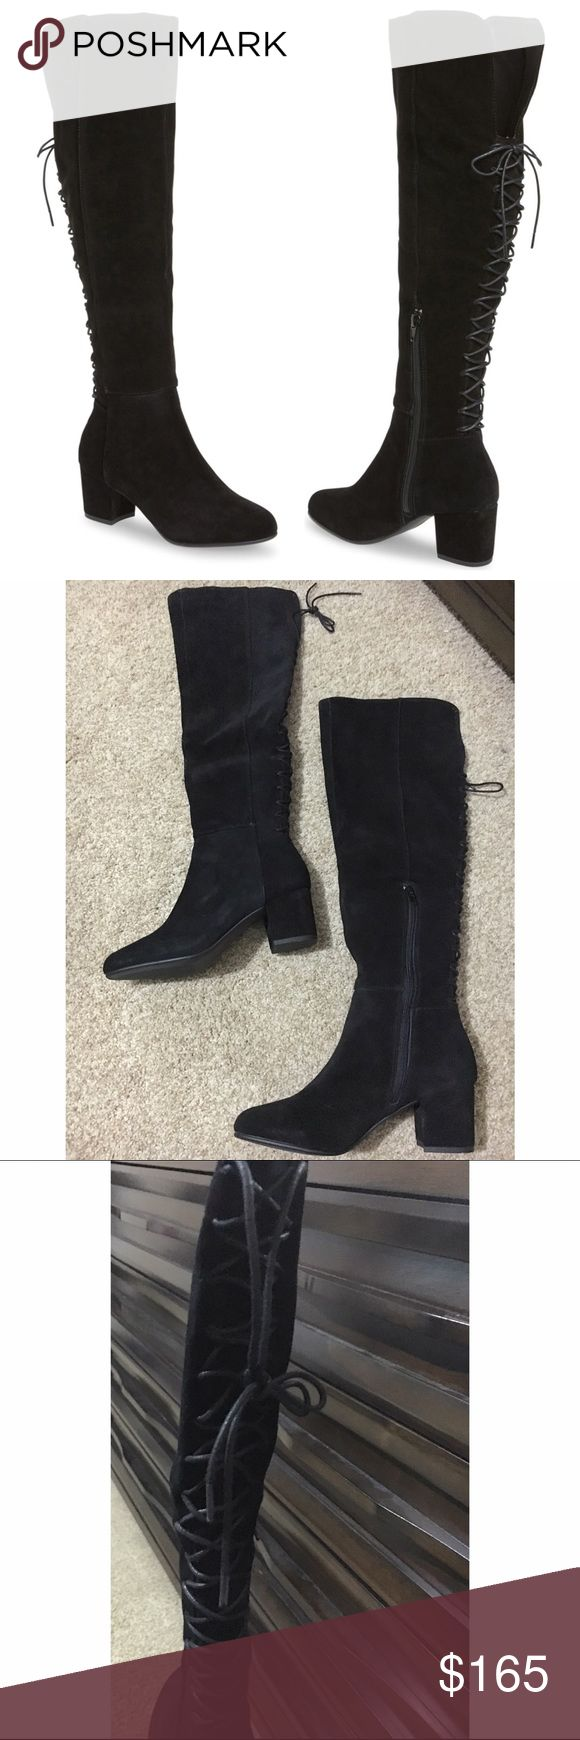 Steve Madden Hansil Suede Knee High Boots Back lacing lends romance to HANSIL's dramatic over-the-knee silhouette, while suede uppers take the boot in a timelessly autumnal direction.  A modest block heel flatters w/o forgoing comfort.   ✨Twill lining ✨2.25 inch heel height, 15 inch shaft circumference, & 19 inch shaft height ✨Functional inside zipper ✨Corset lacing along back of shaft Purchased these but sadly my calves are too big 😩.  Brand new & never worn. 🔺Made to fit narrow calves…